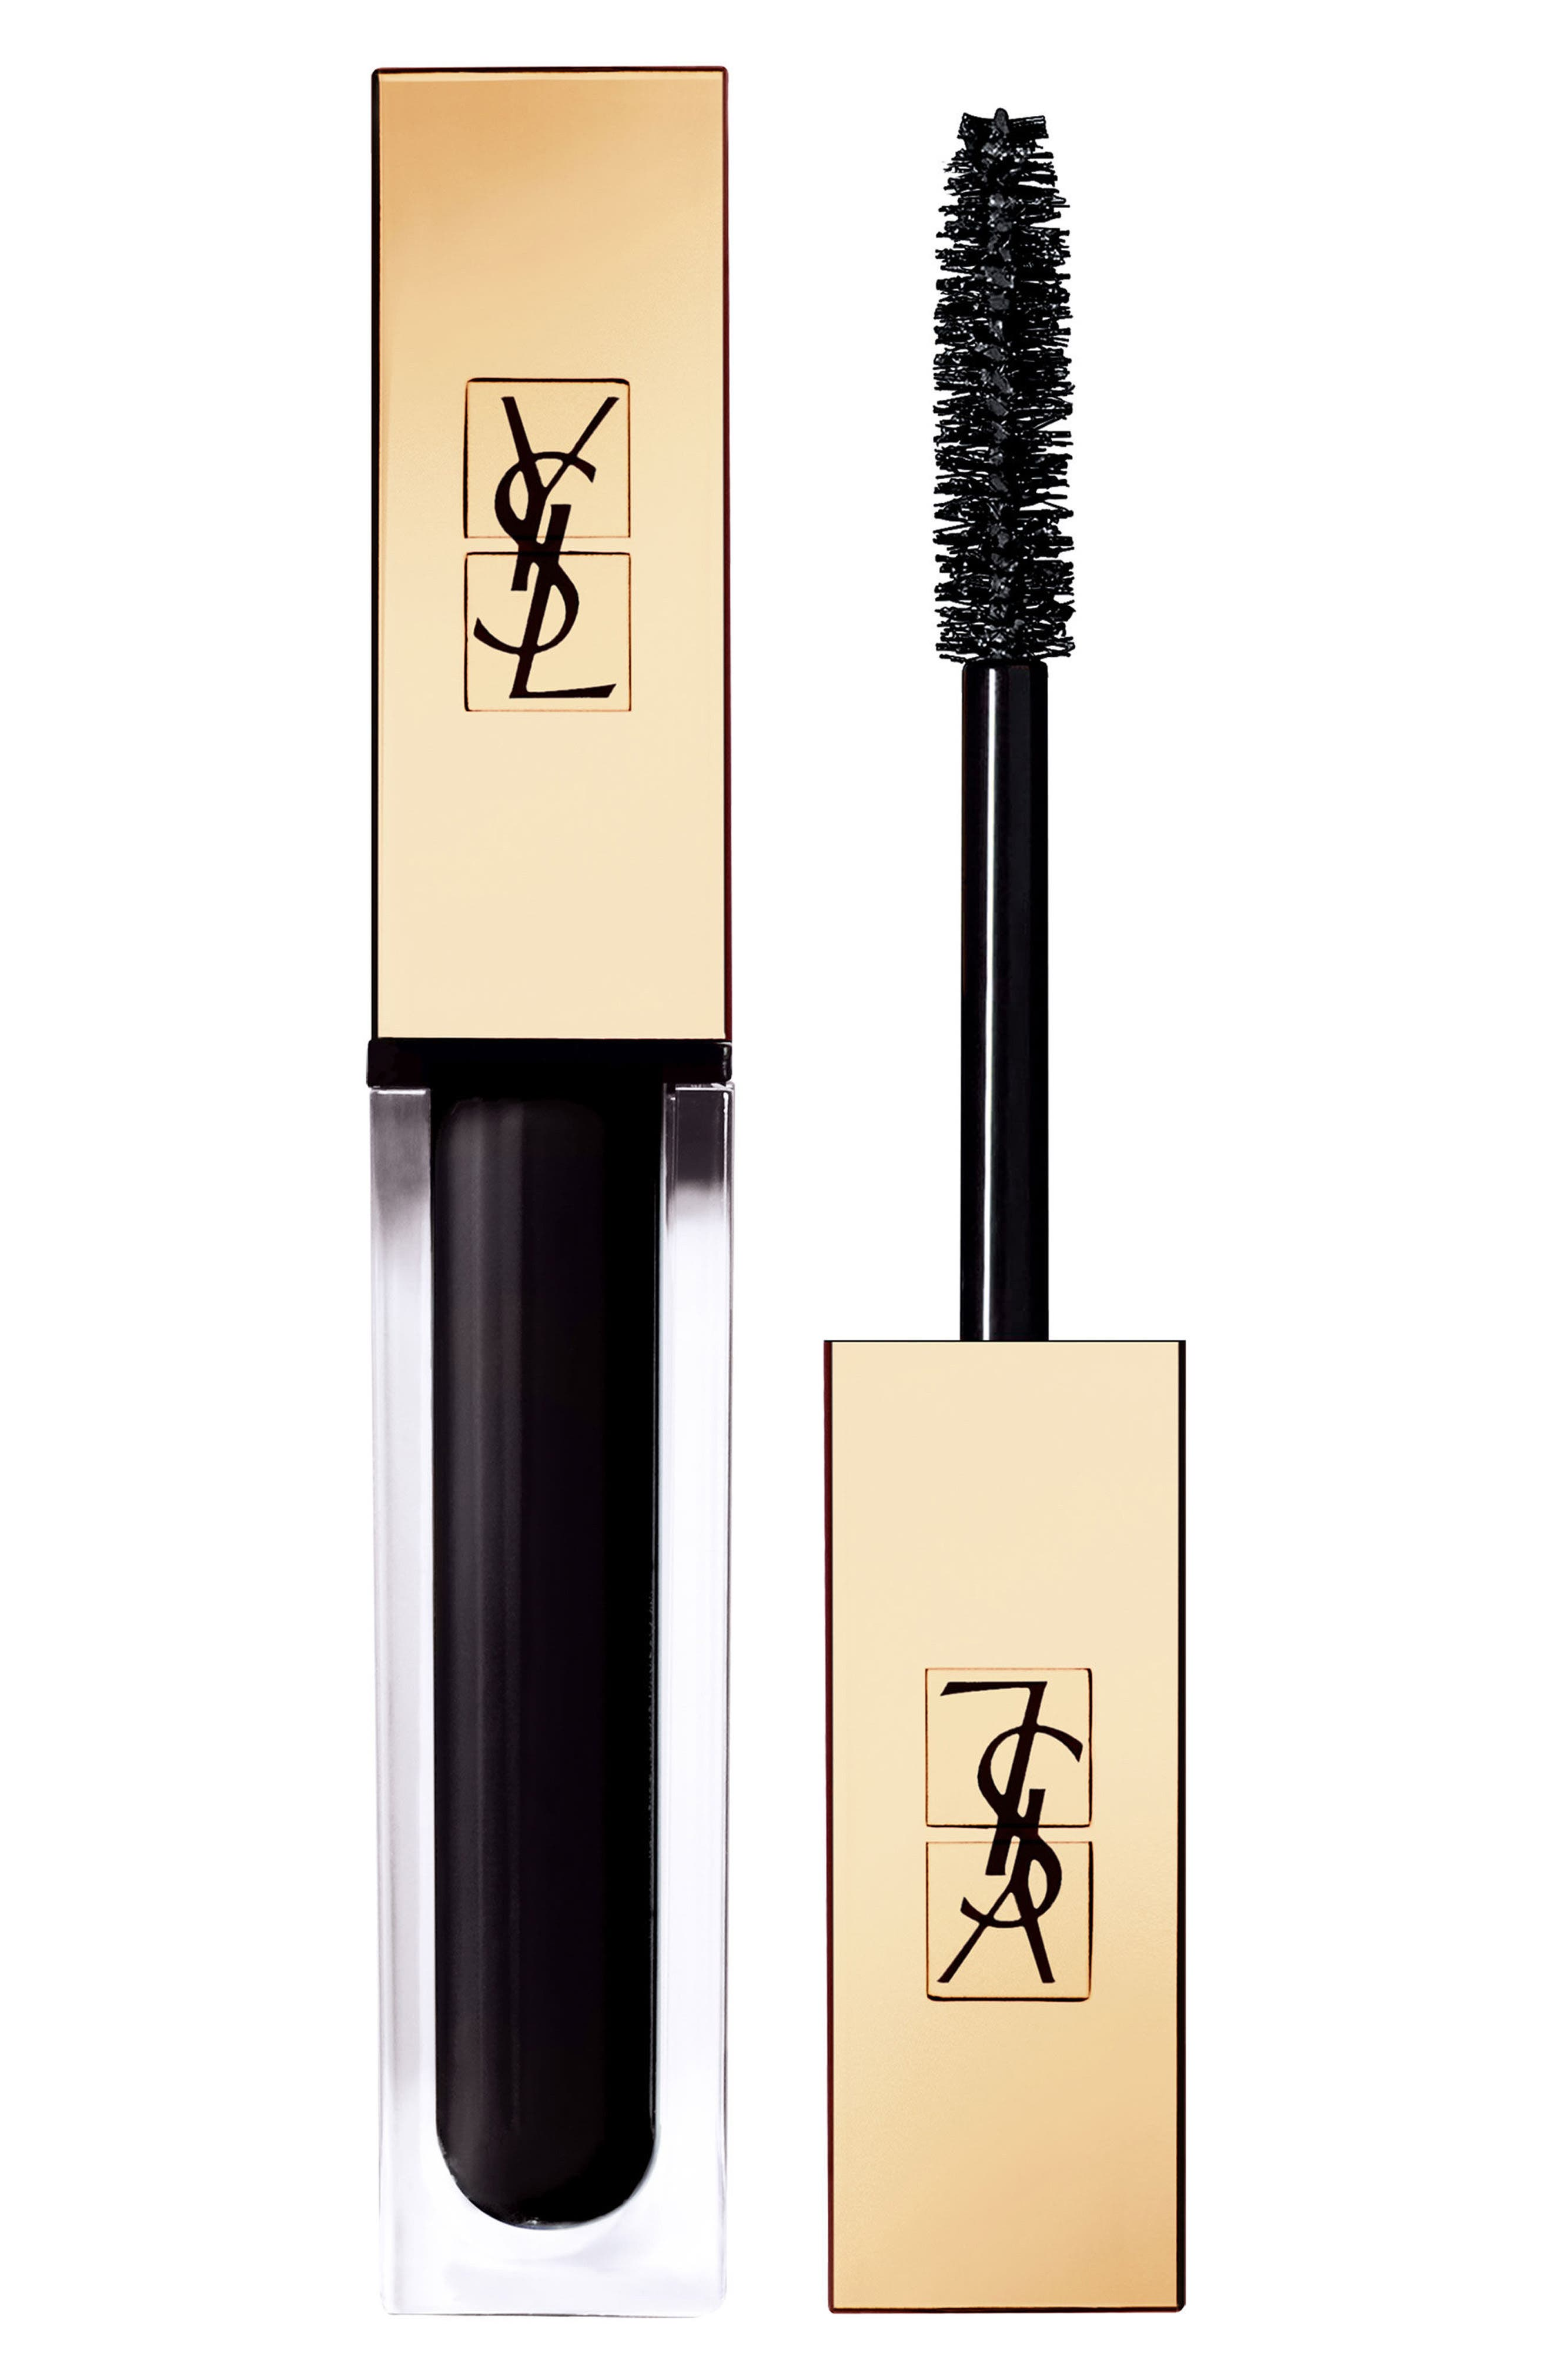 Yves Saint Laurent Mascara Vinyl Couture (Nordstrom Exclusive)